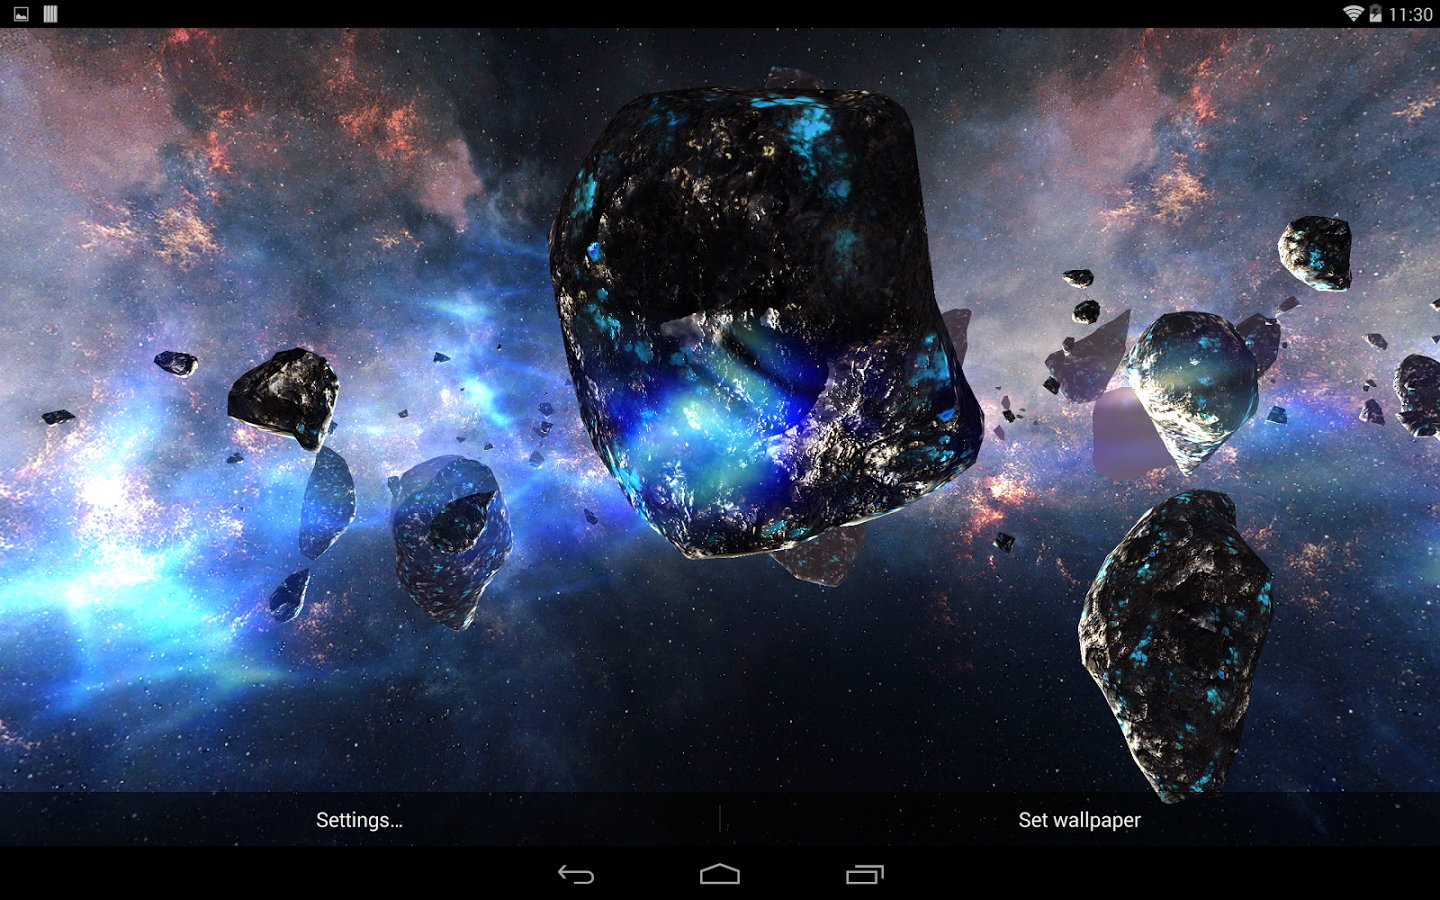 Asteroids Pack   Android Apps on Google Play 1440x900